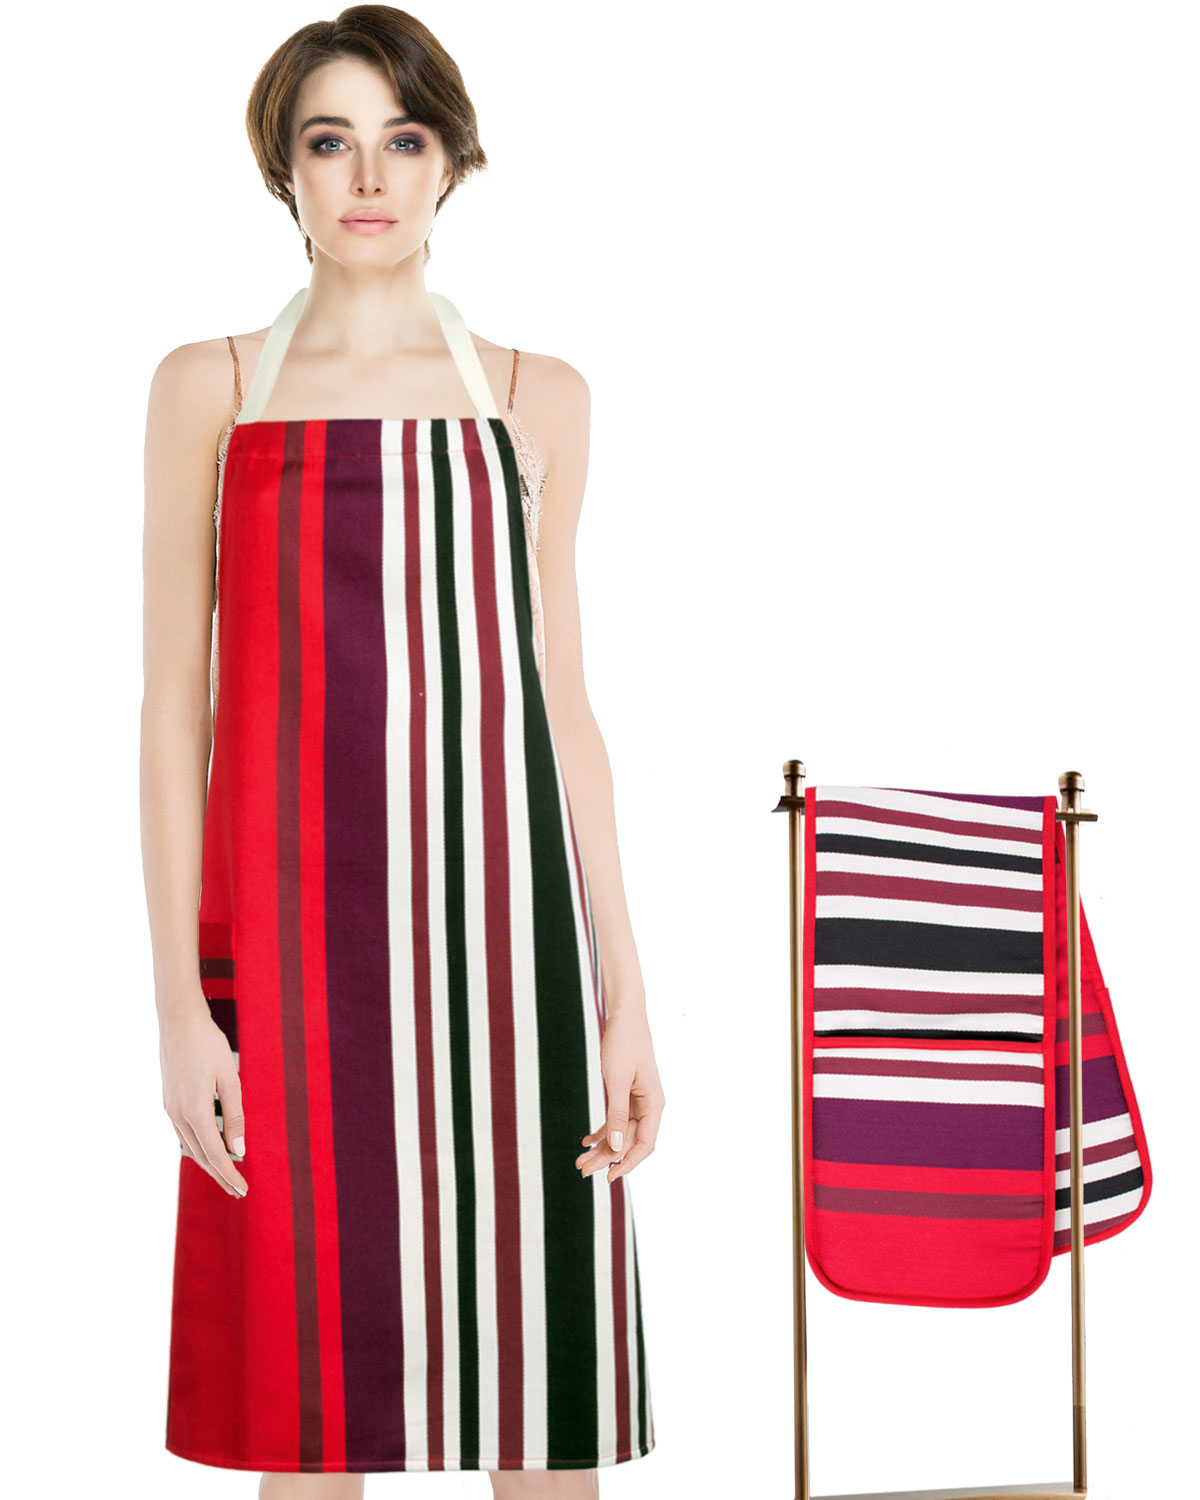 Kitchen Apron + Double Oven Gloves - Monte Carlo Cotton Red Stripes